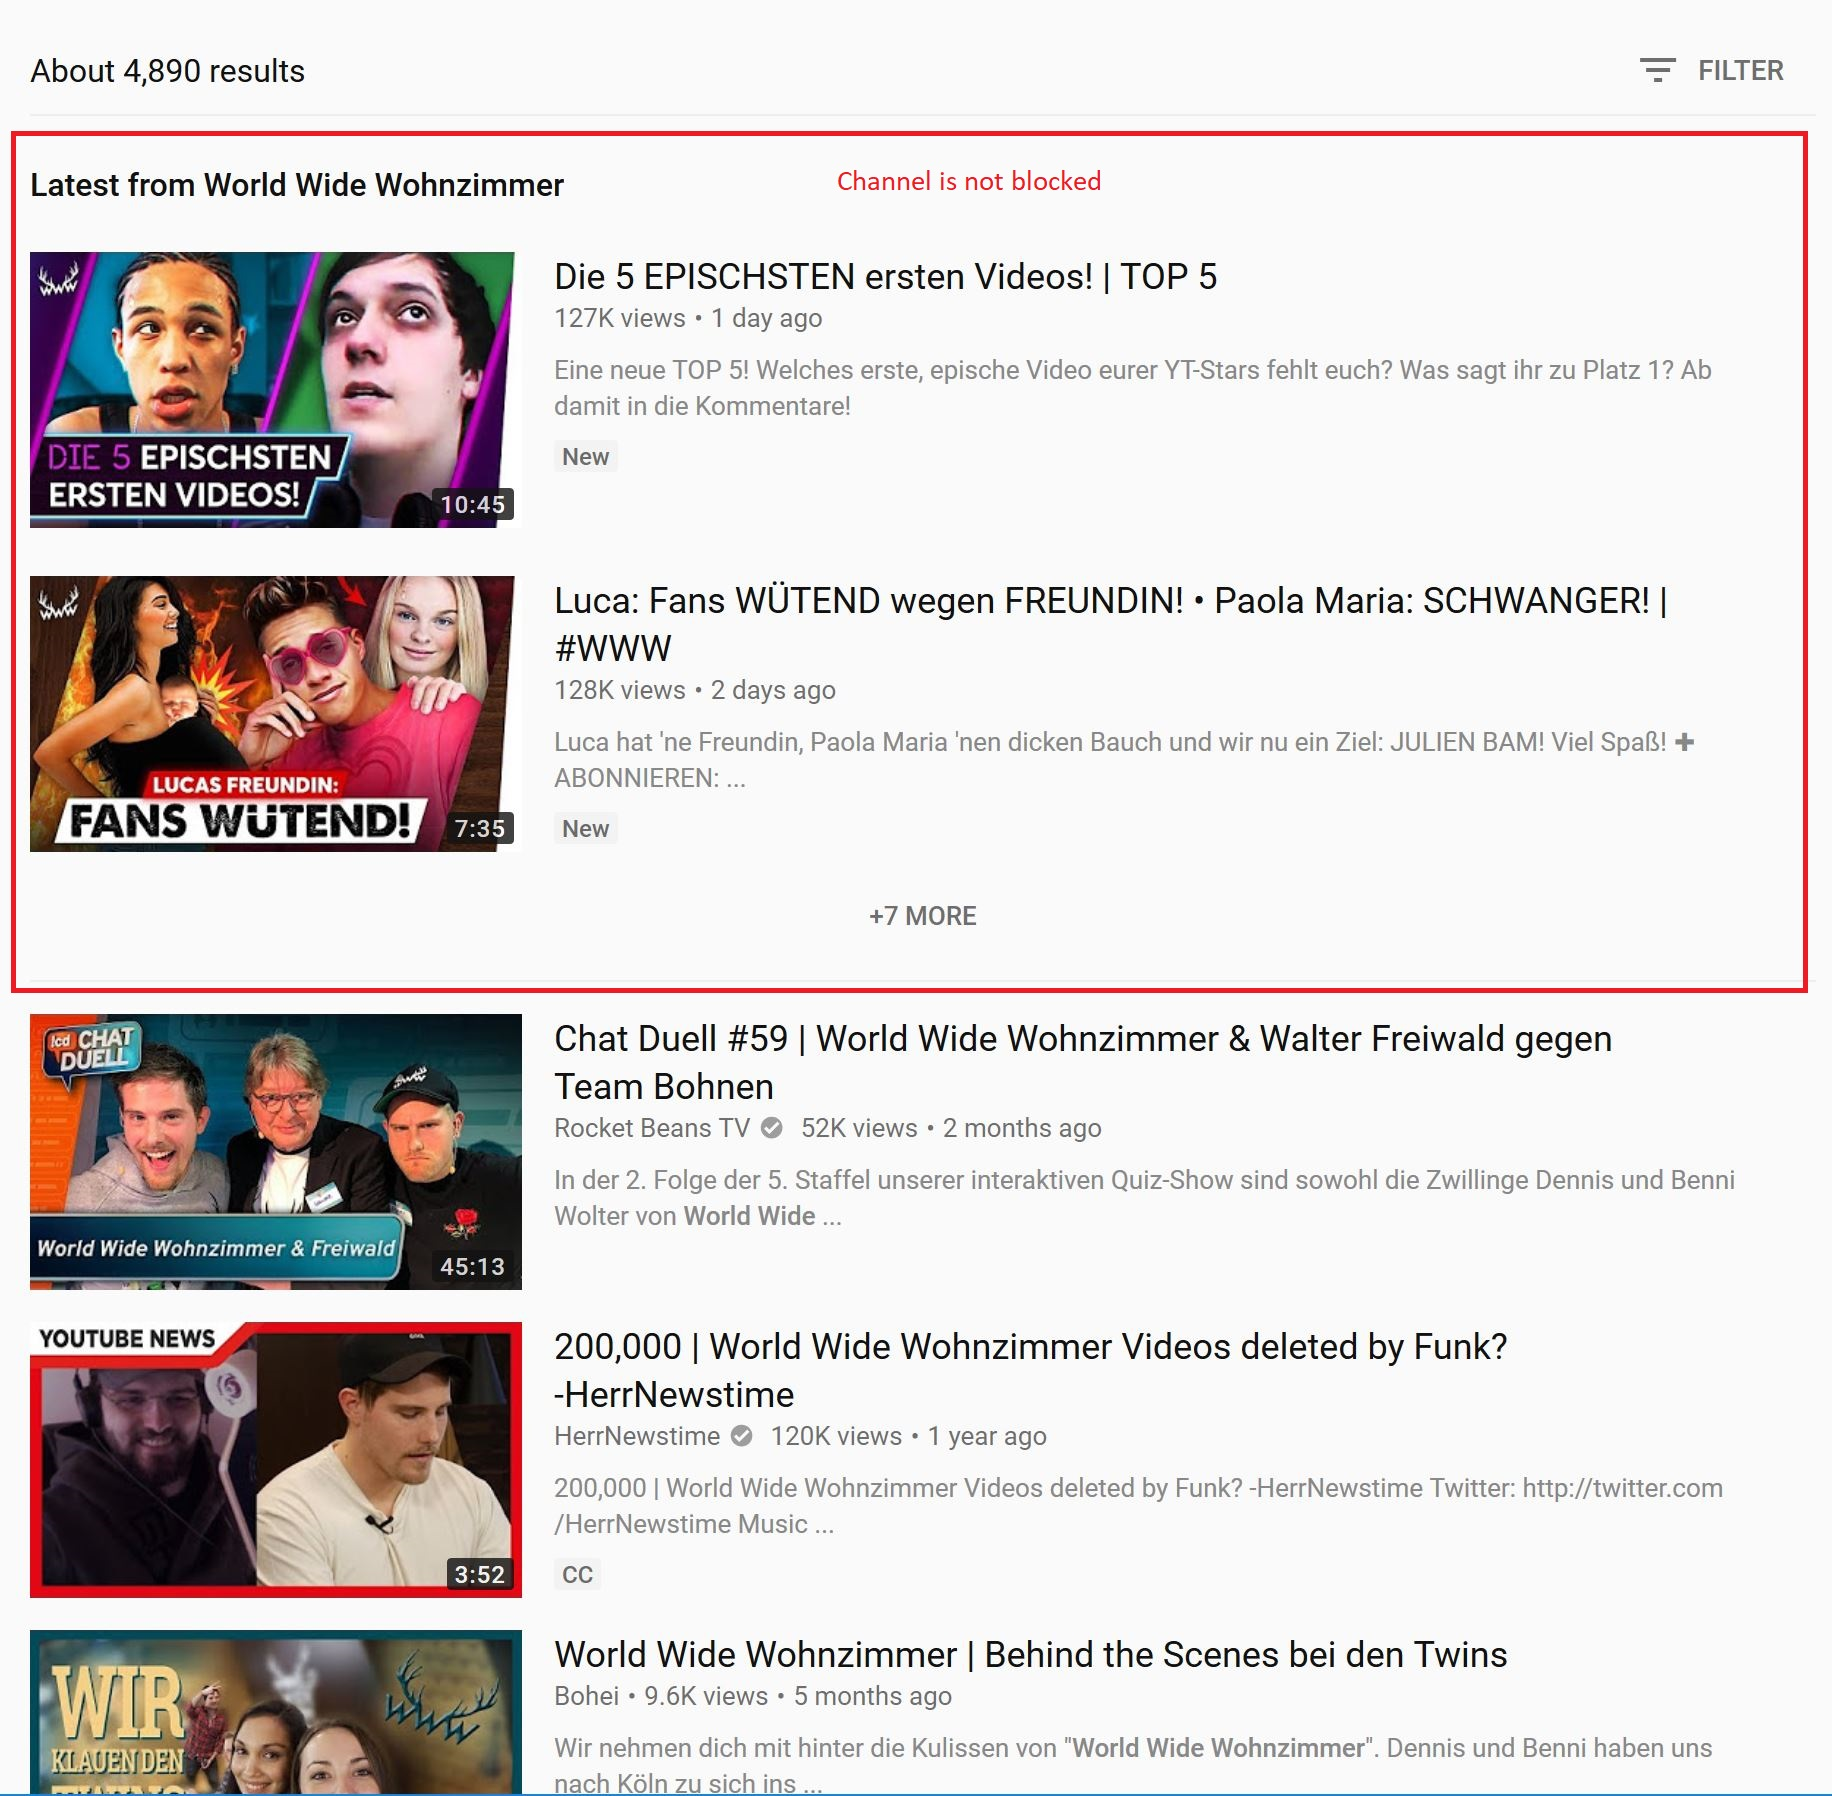 World Wide Wohnzimmer Channel Is Not Blocked In Latest Video Section In Search Result